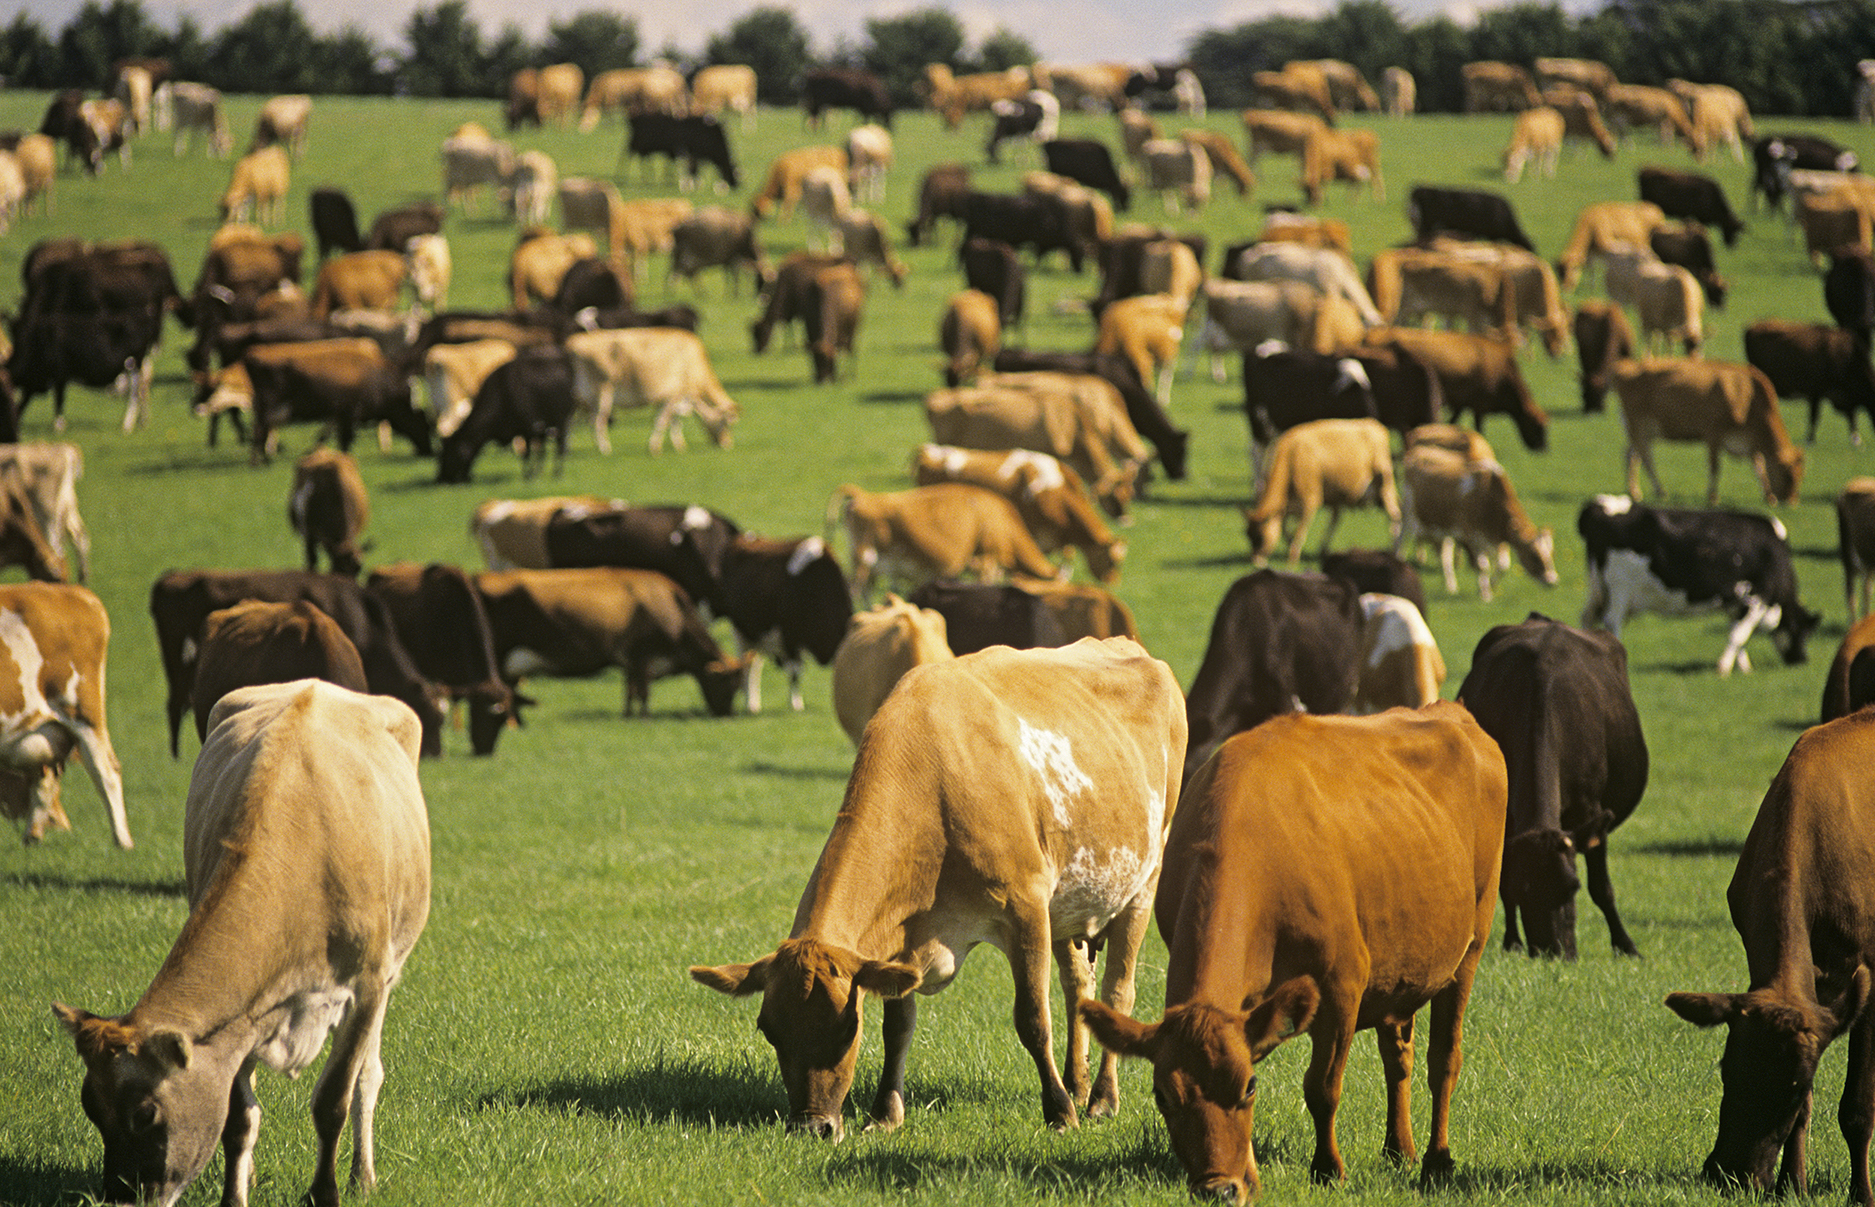 Grass fed and organic cows milk